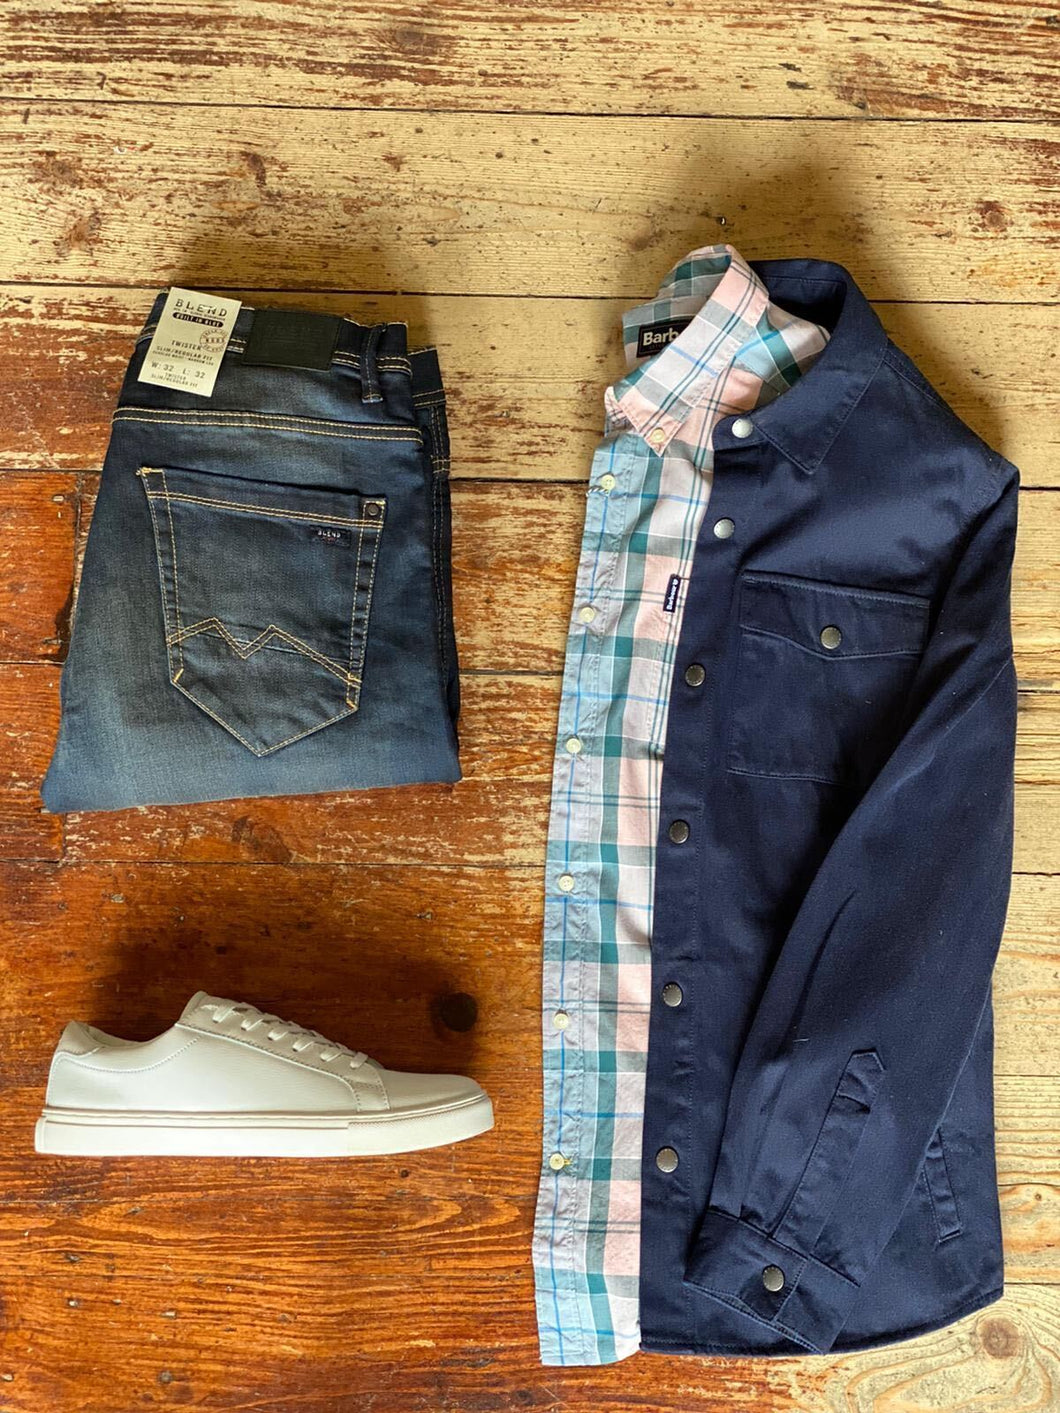 Barbour Overshirt & Sandwood Casual Look barbour-mortan-inky-blue-overshirt / barbour-sandwood-pink-cotton-check-shirt / blend-dark-wash-jeans